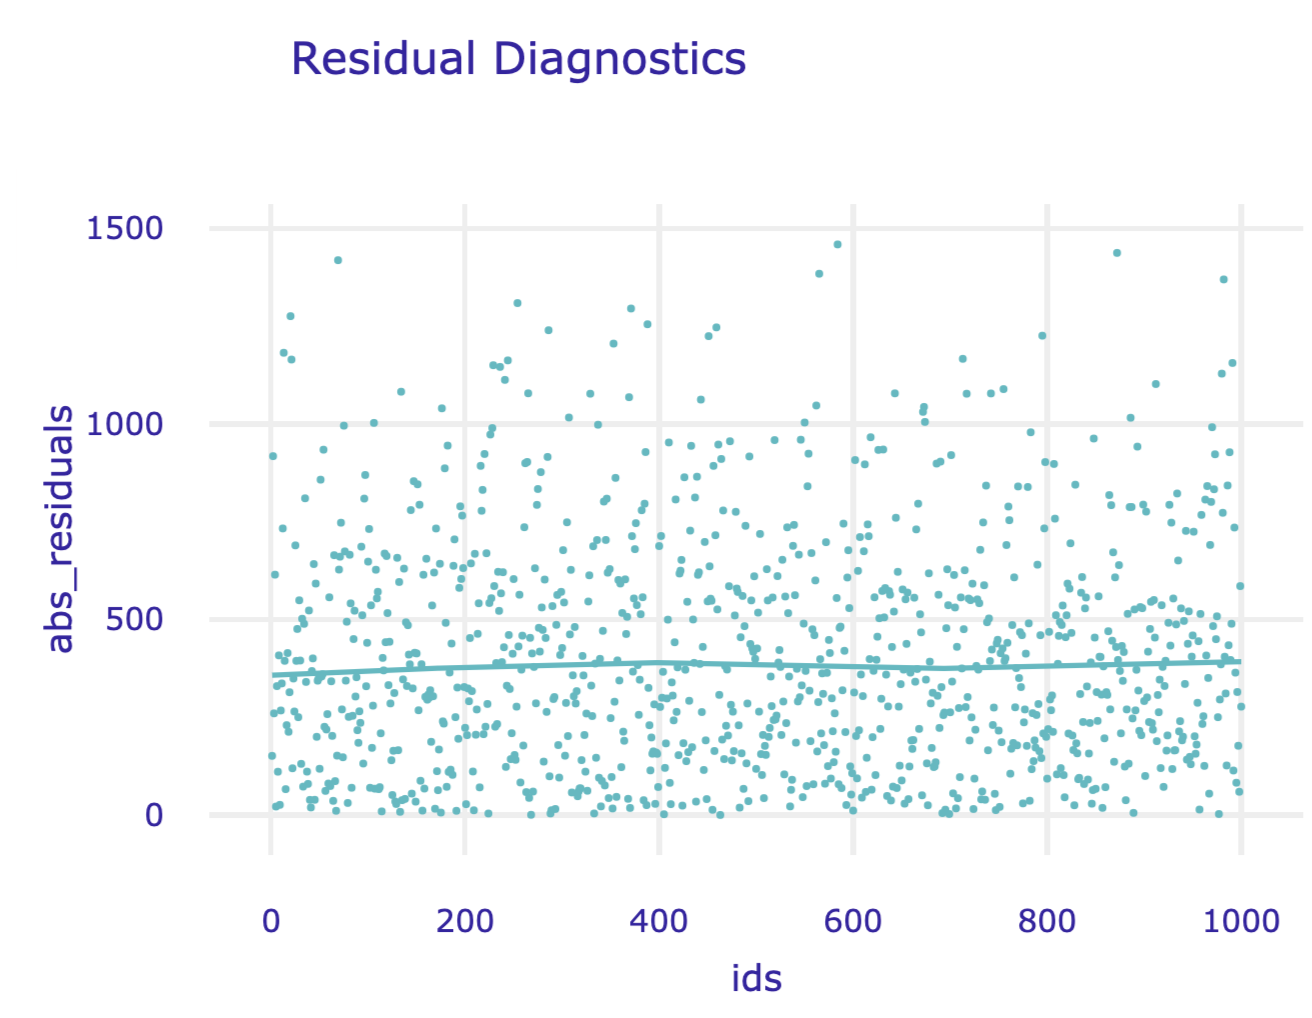 Absolute residuals versus indices of corresponding observations for the random forest model for the Apartments data.